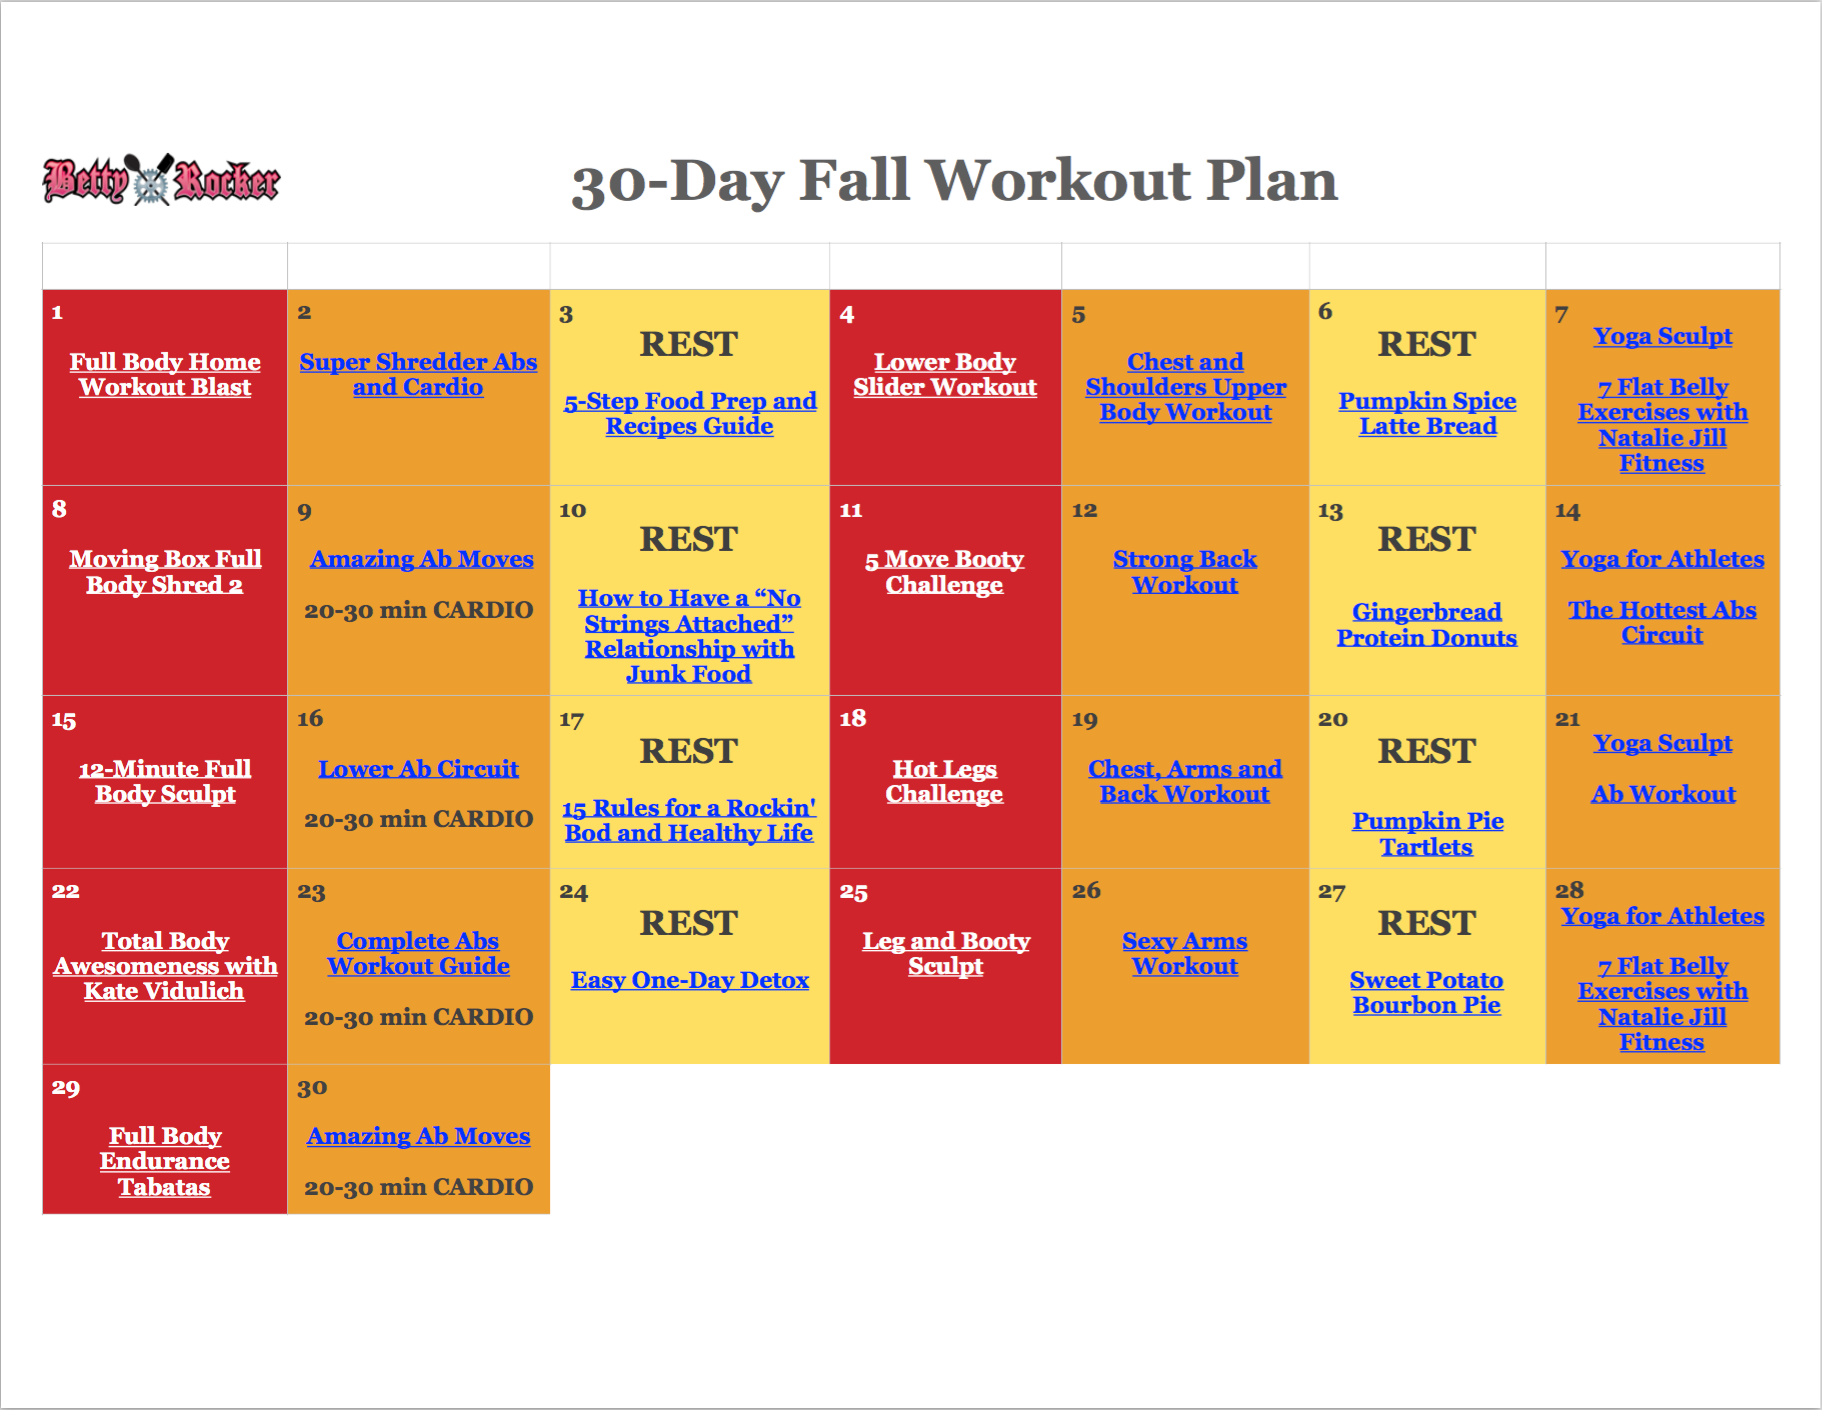 Download Betty Rockers 30 Day Fall Workout Plan And Calendar Start Anytime Home Workouts No Equipment Required